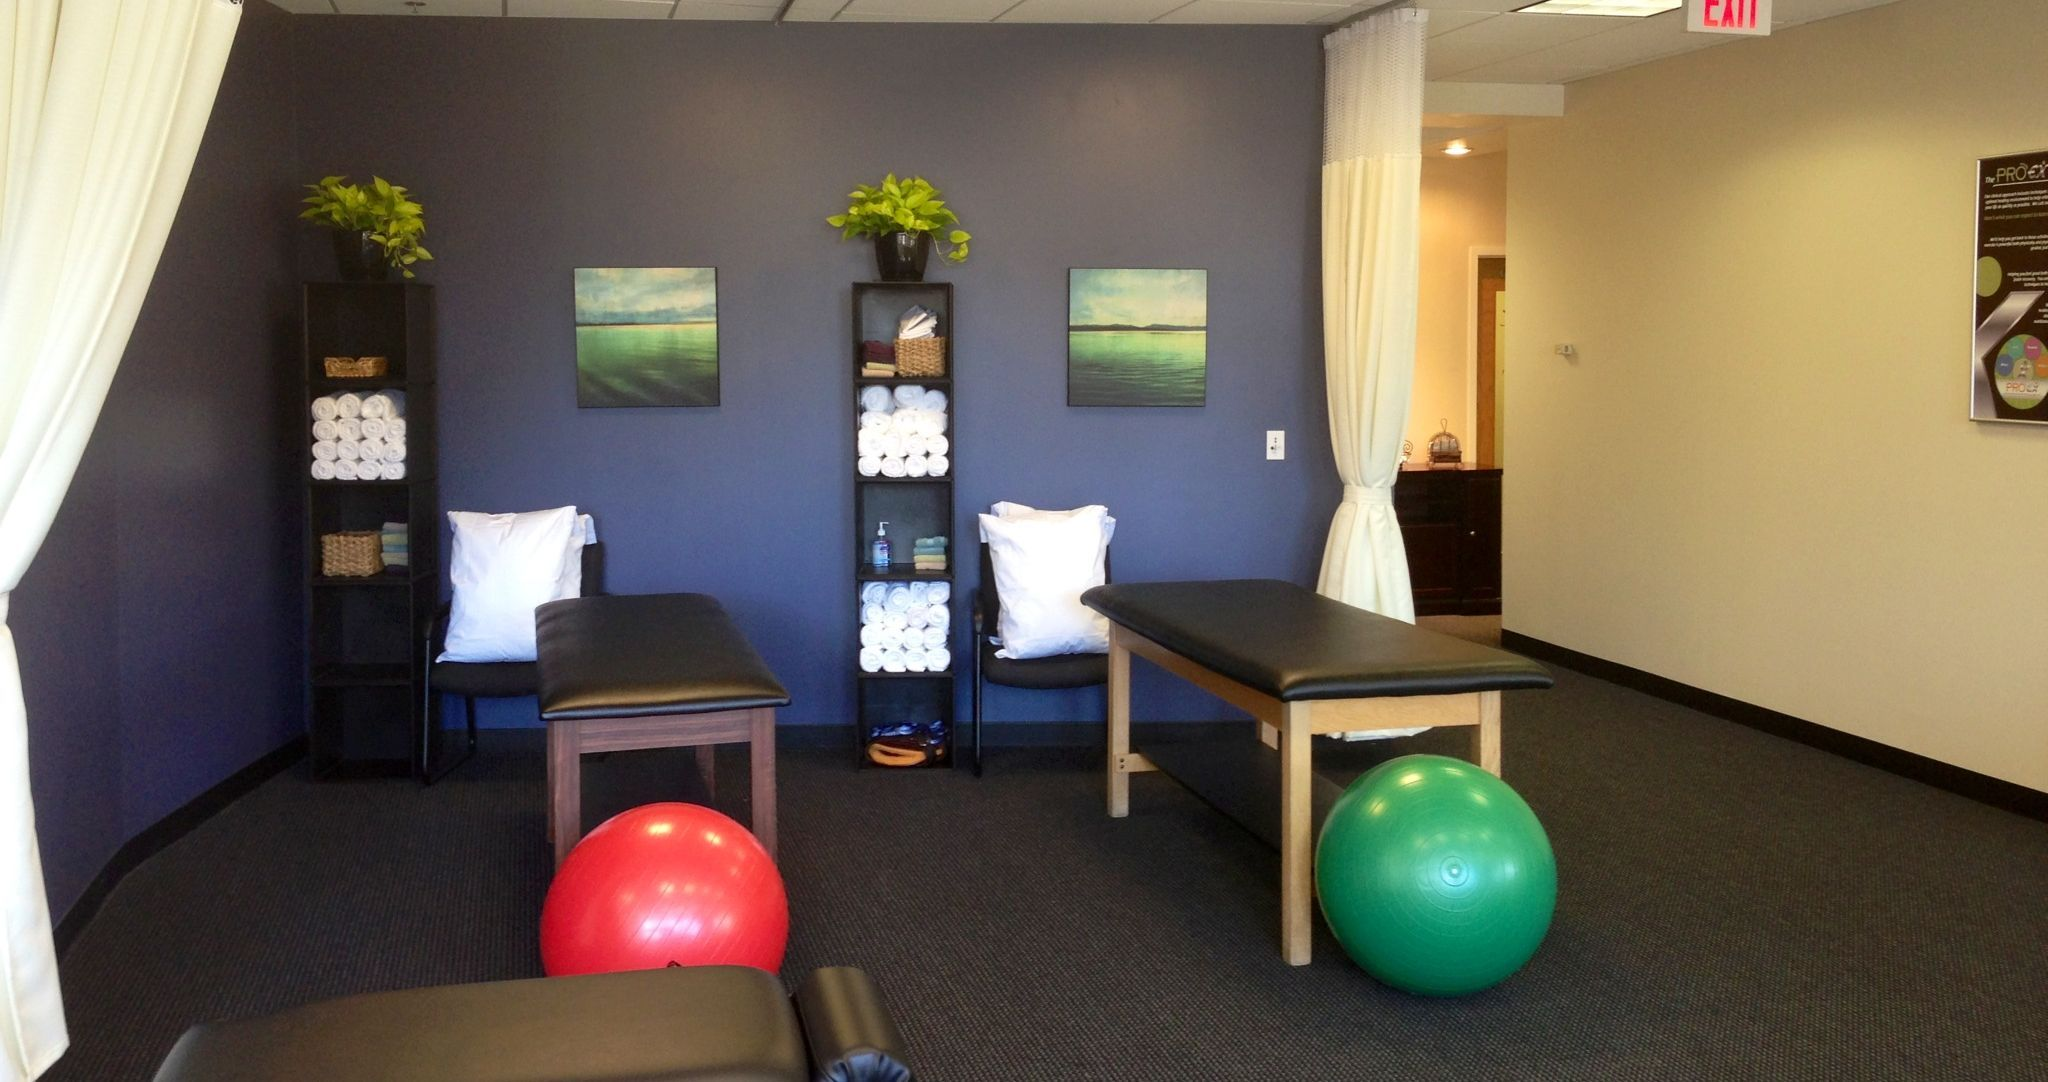 Phenomenal Physical Therapy Clinic Interior Design Proex Physical Download Free Architecture Designs Embacsunscenecom